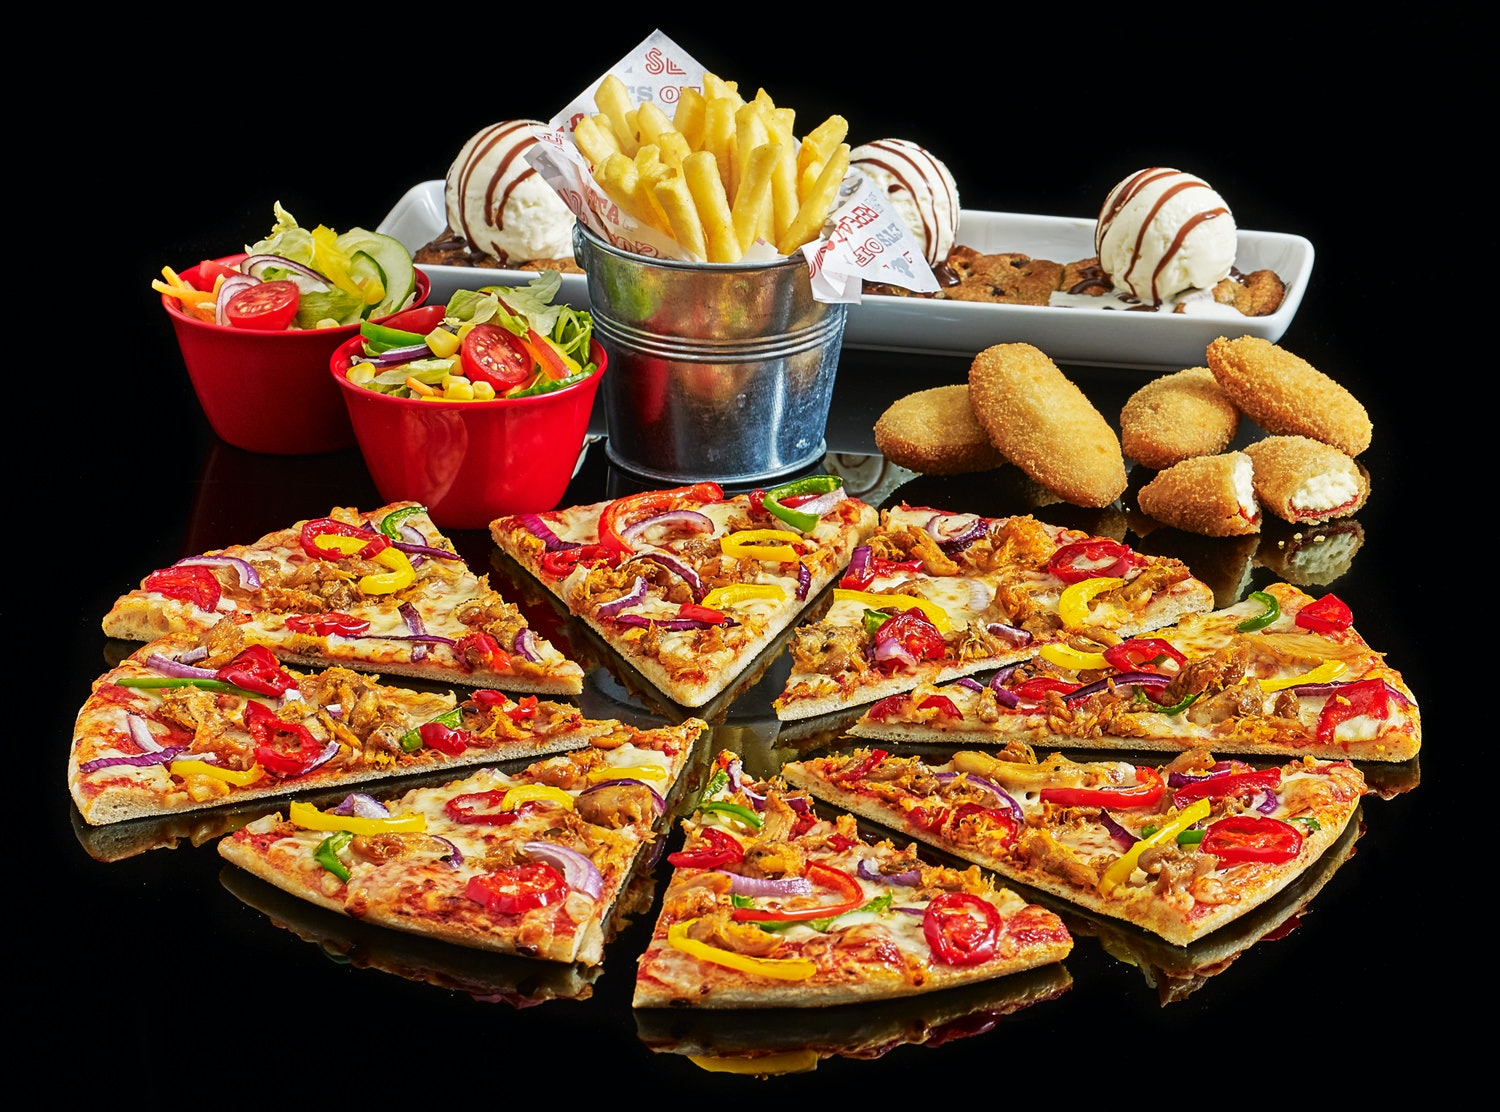 You Can Get Paid To Eat Pizza Hut Through A Site Called Myoffers Looking For Taste Testers